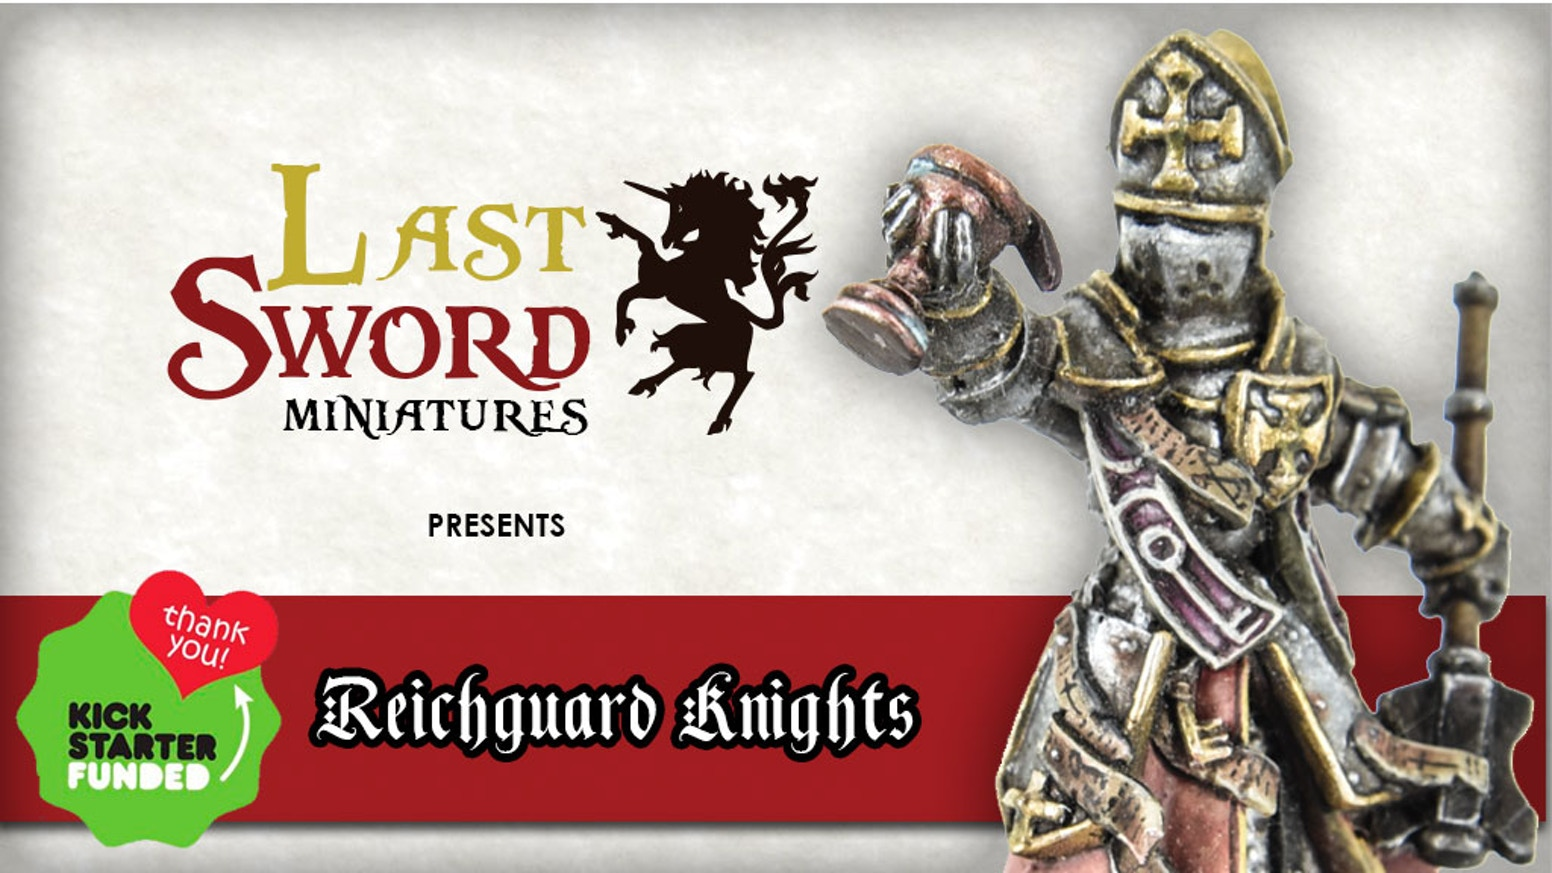 Now avariable at: www.LastSword.comReichguard foot knights are 32mm miniatures, sculpted and crafted in Spain for fantasy wargames.